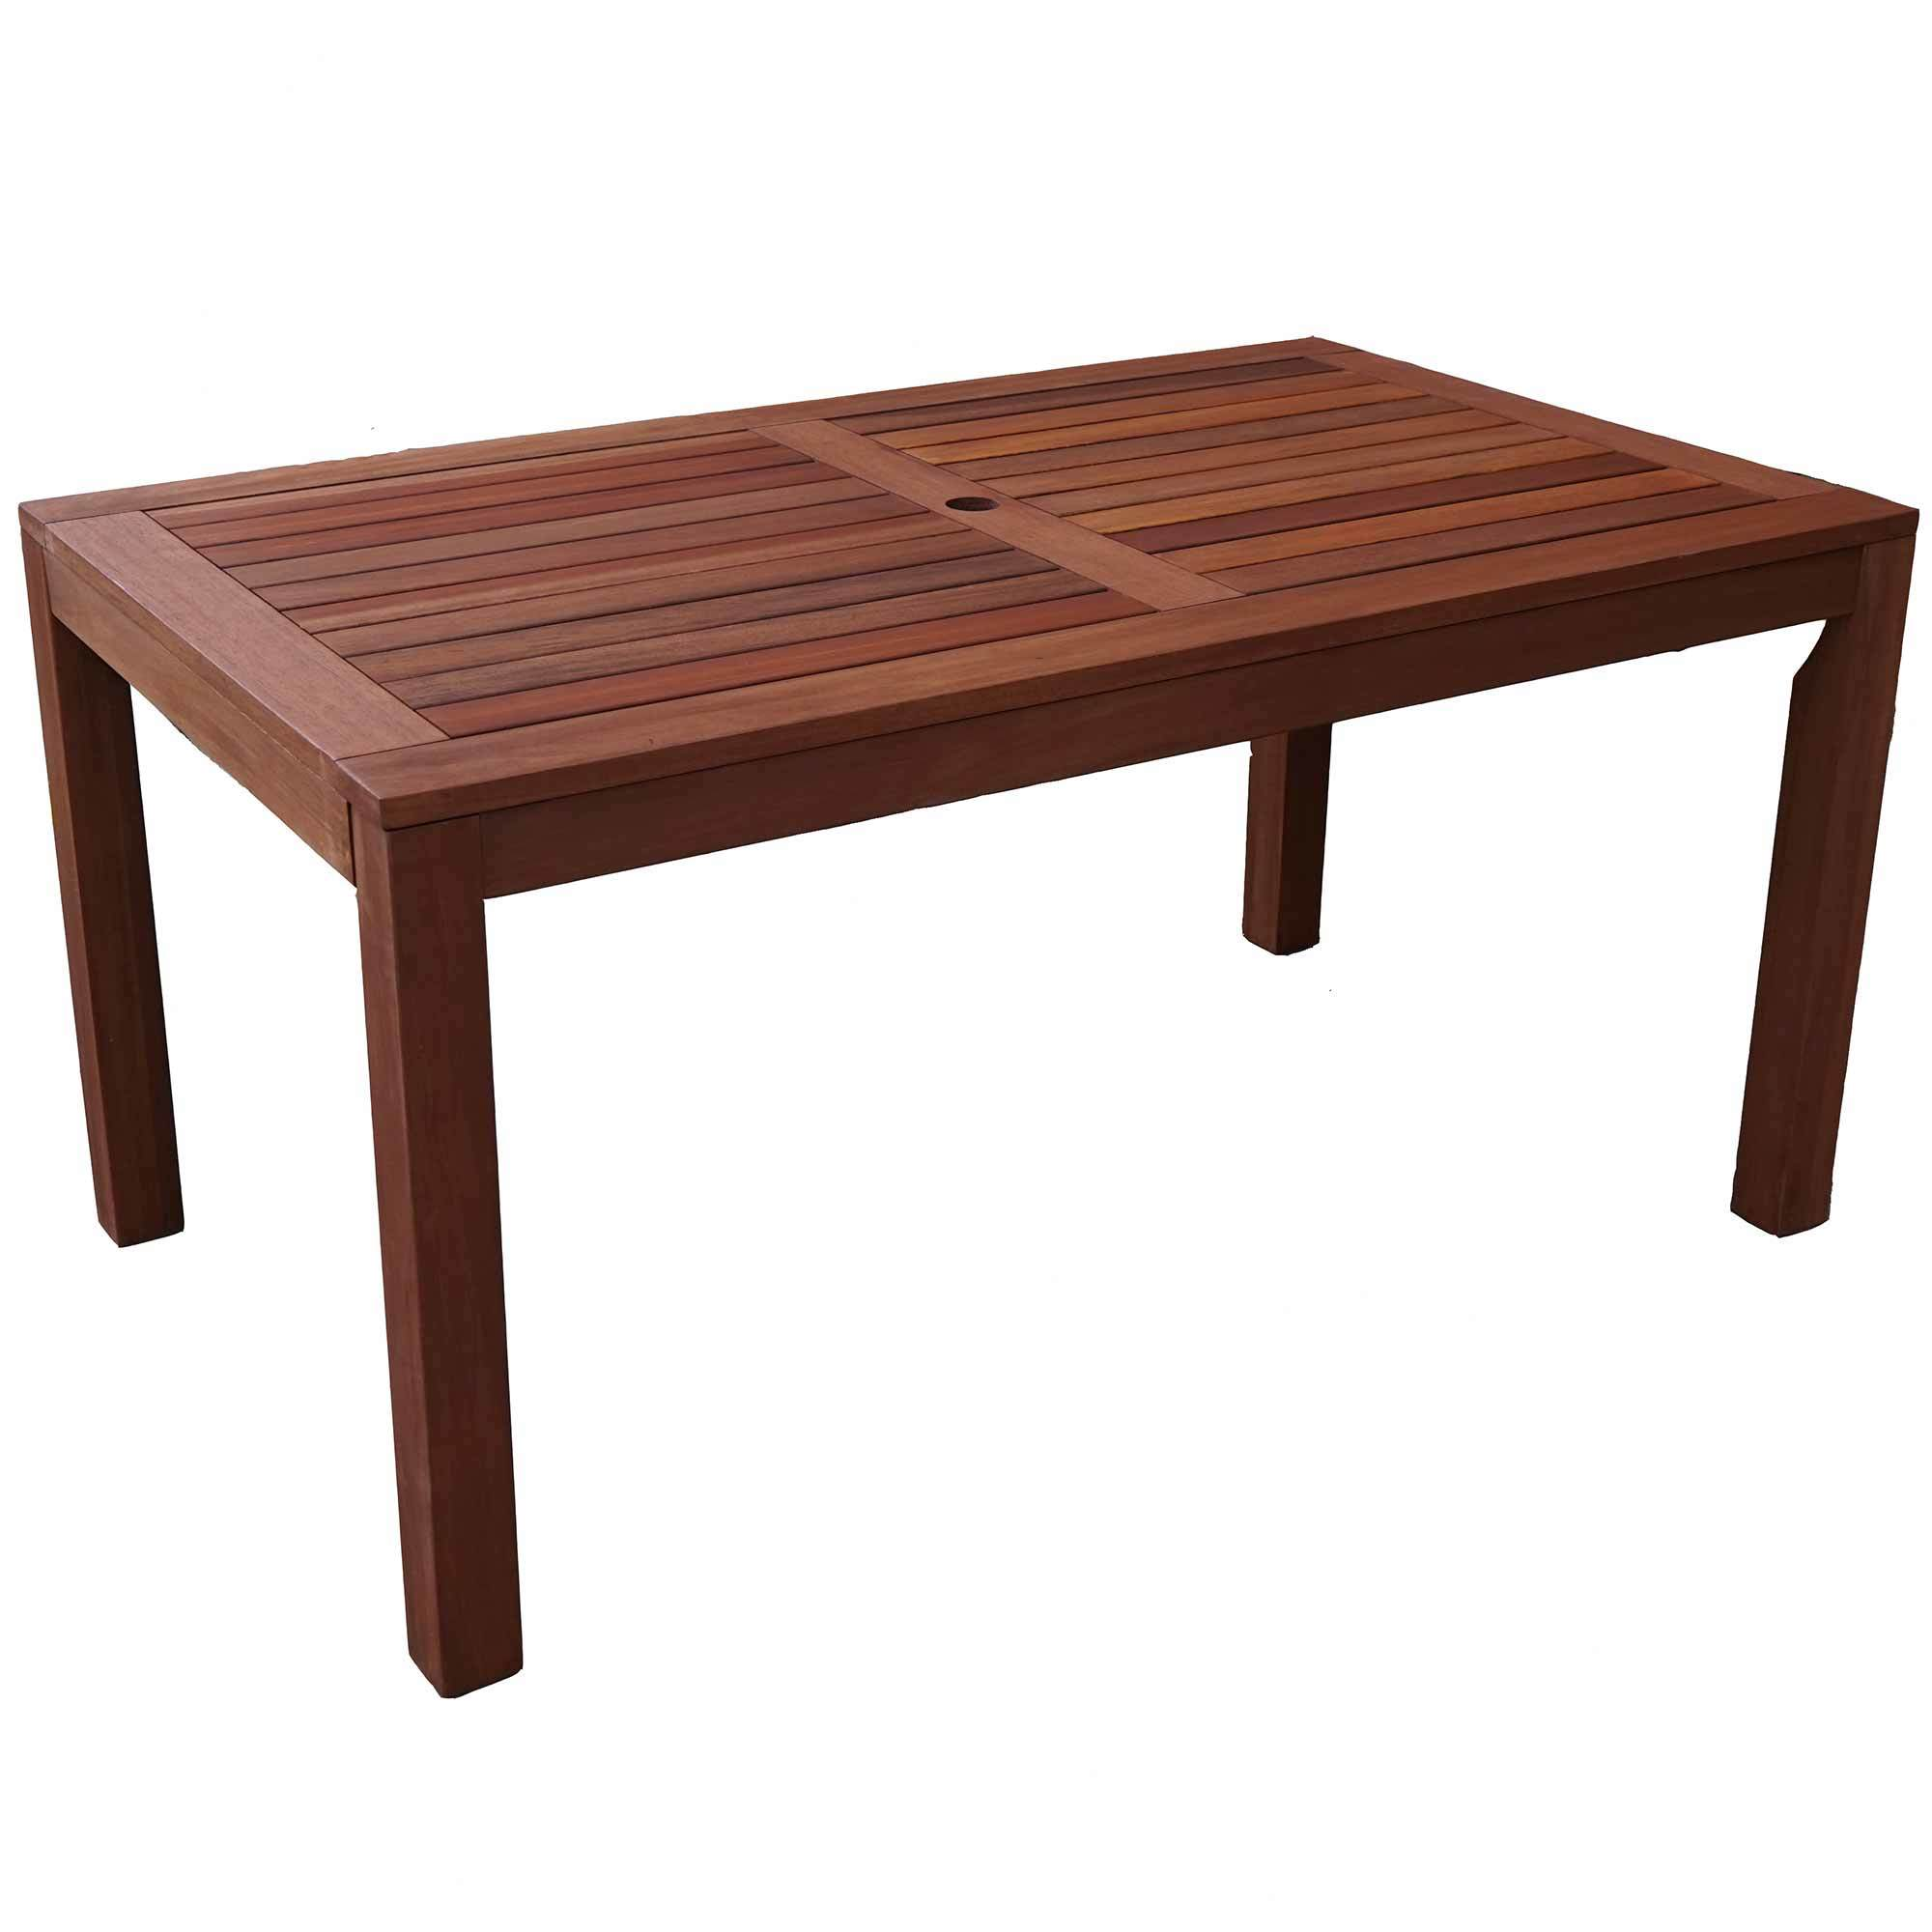 Sku thev1069 long rectangular outdoor wooden dining table is also sometimes listed under the following manufacturer numbers dvt 184ll